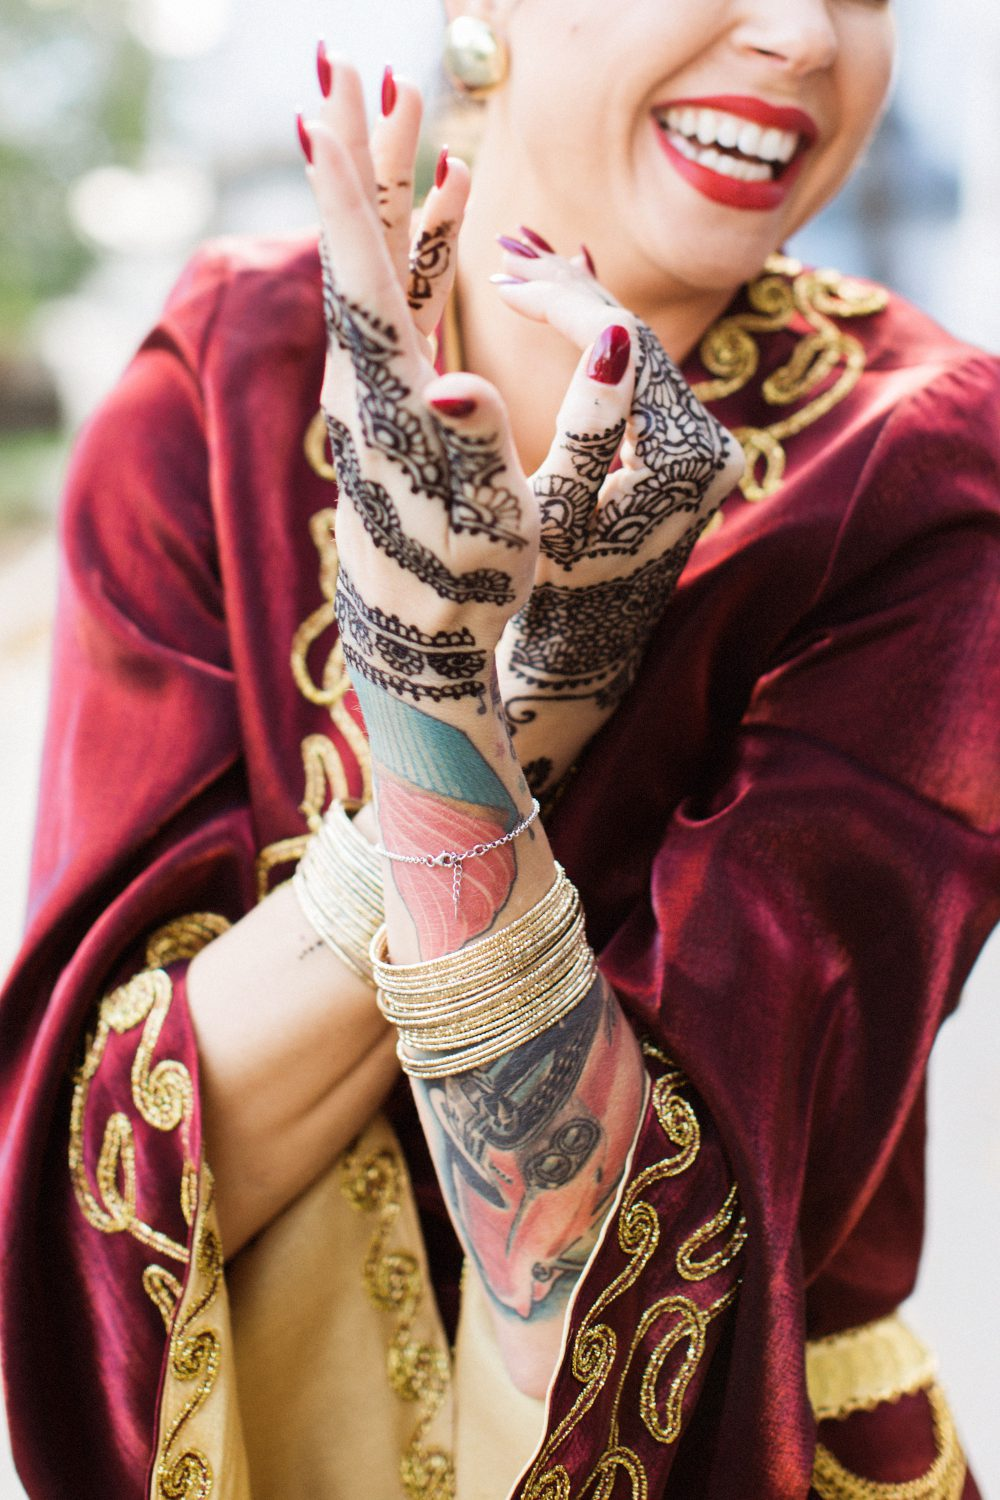 Turkish henna ceremony in Sweden  © Lena Larsson